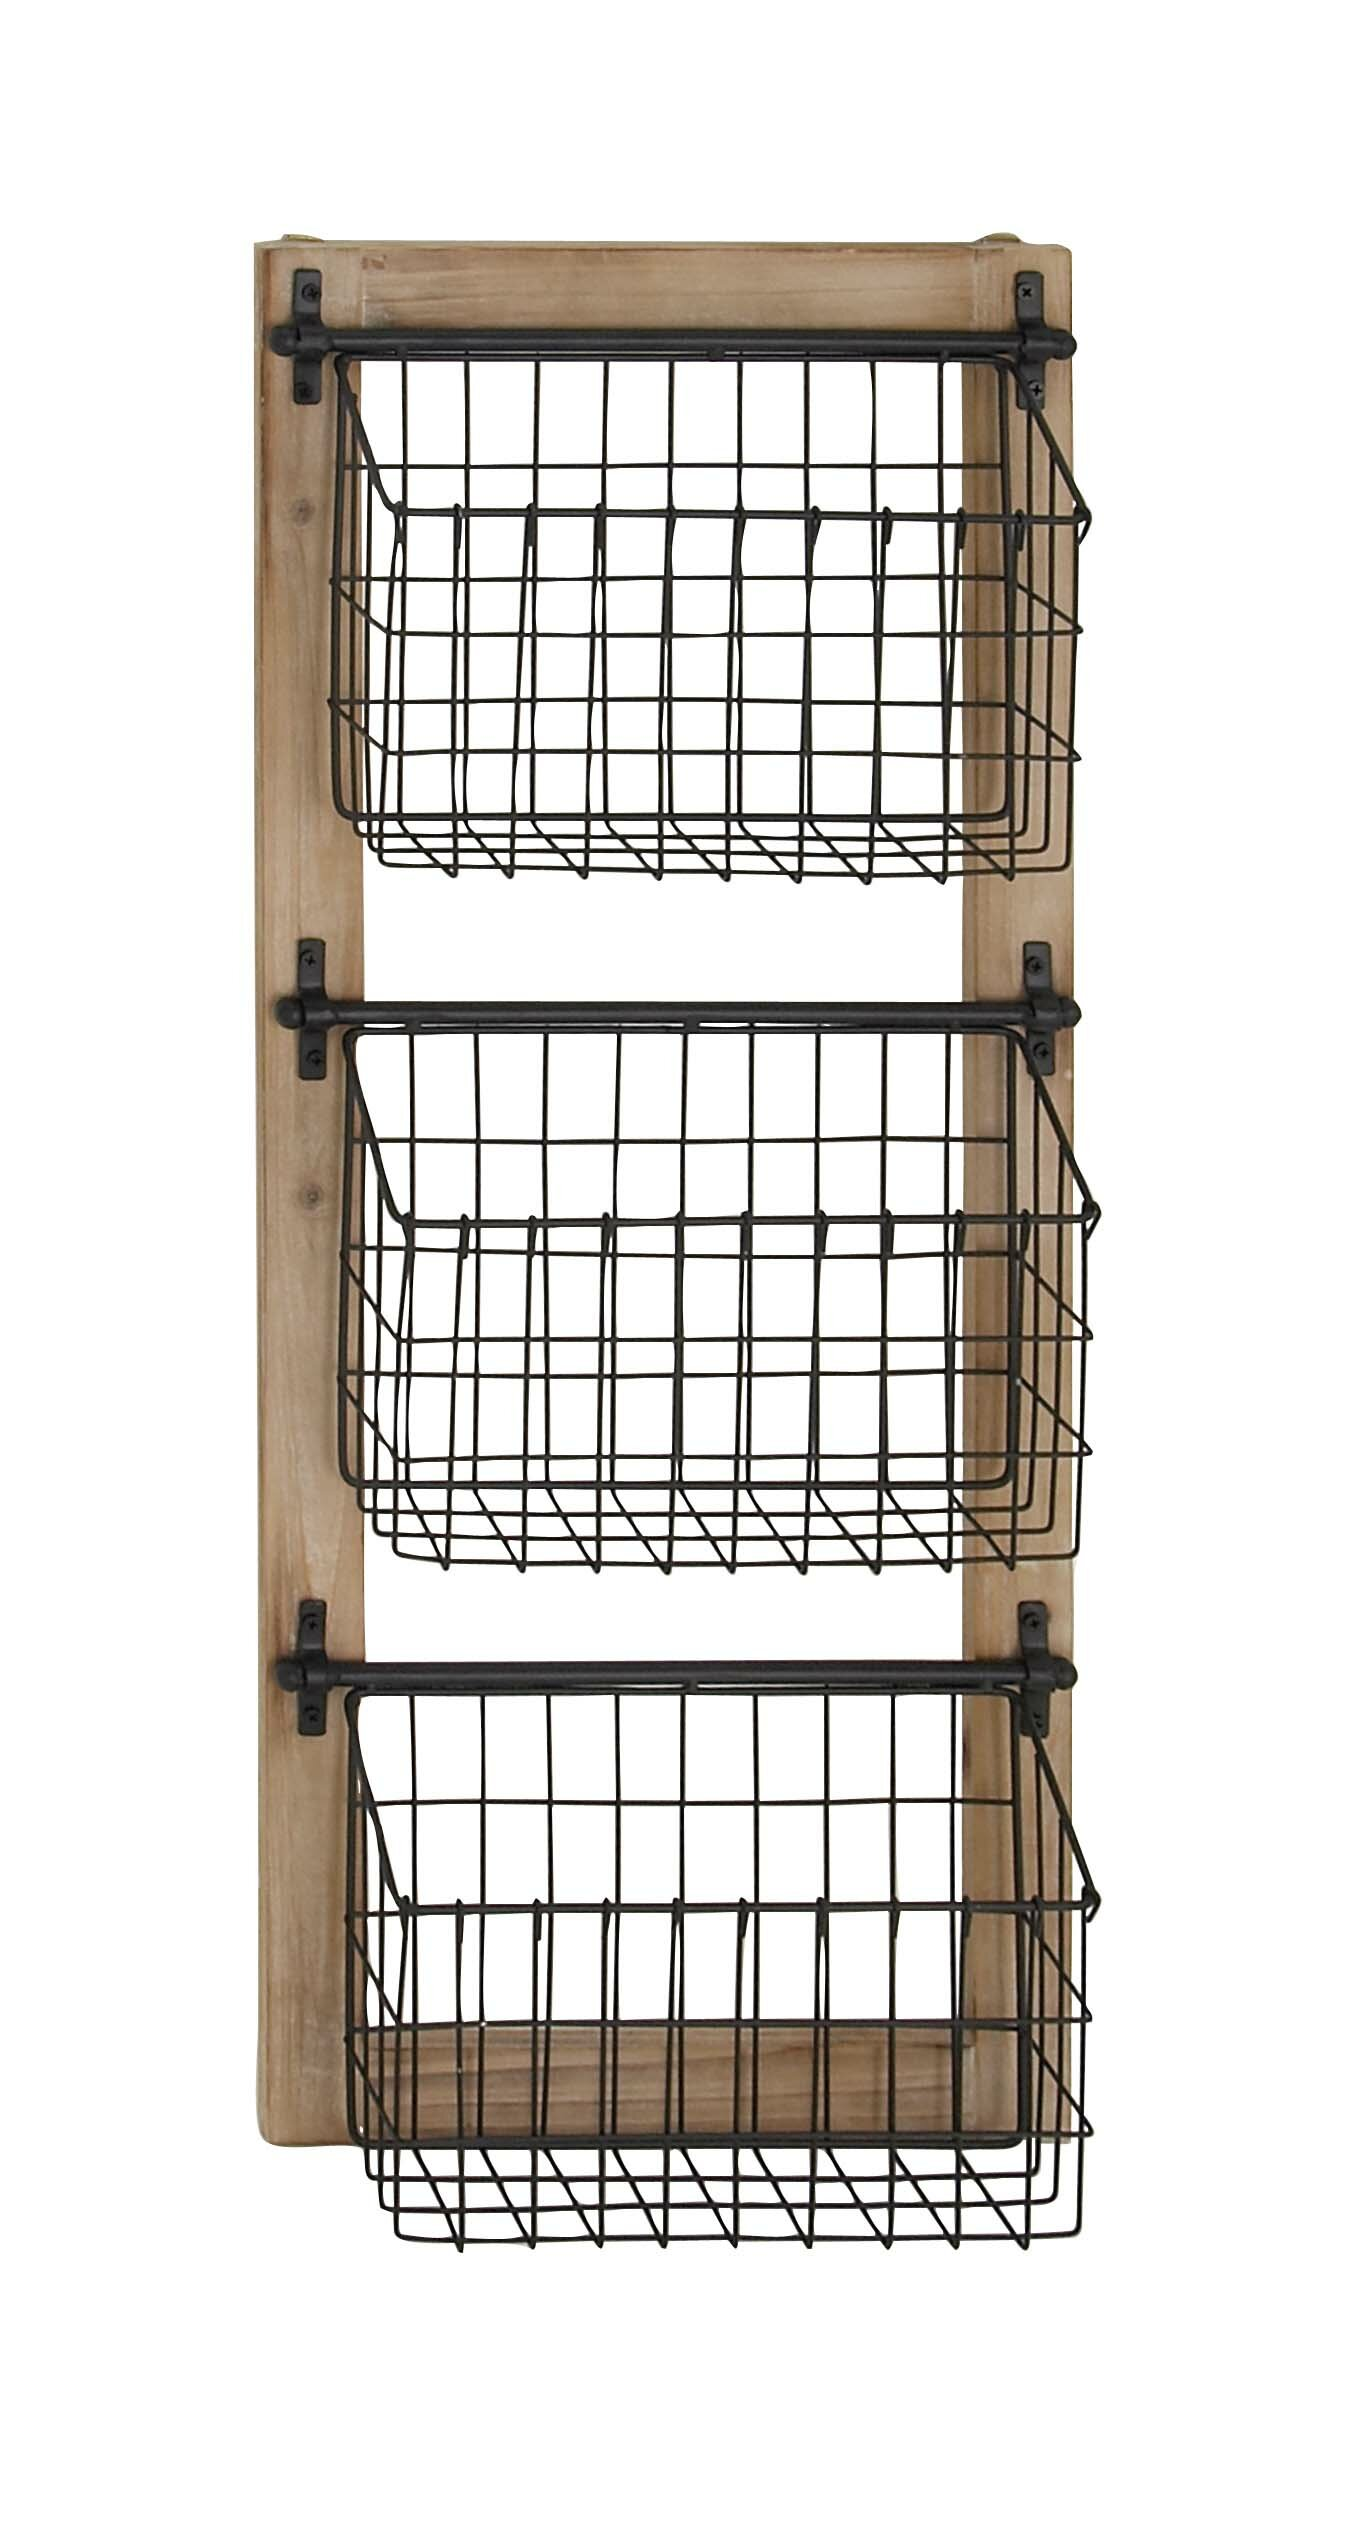 Gracie Oaks Harvin 34 H X 14 W X 4 D Industrial 3 Tier Basket Wall Rack Reviews Wayfair